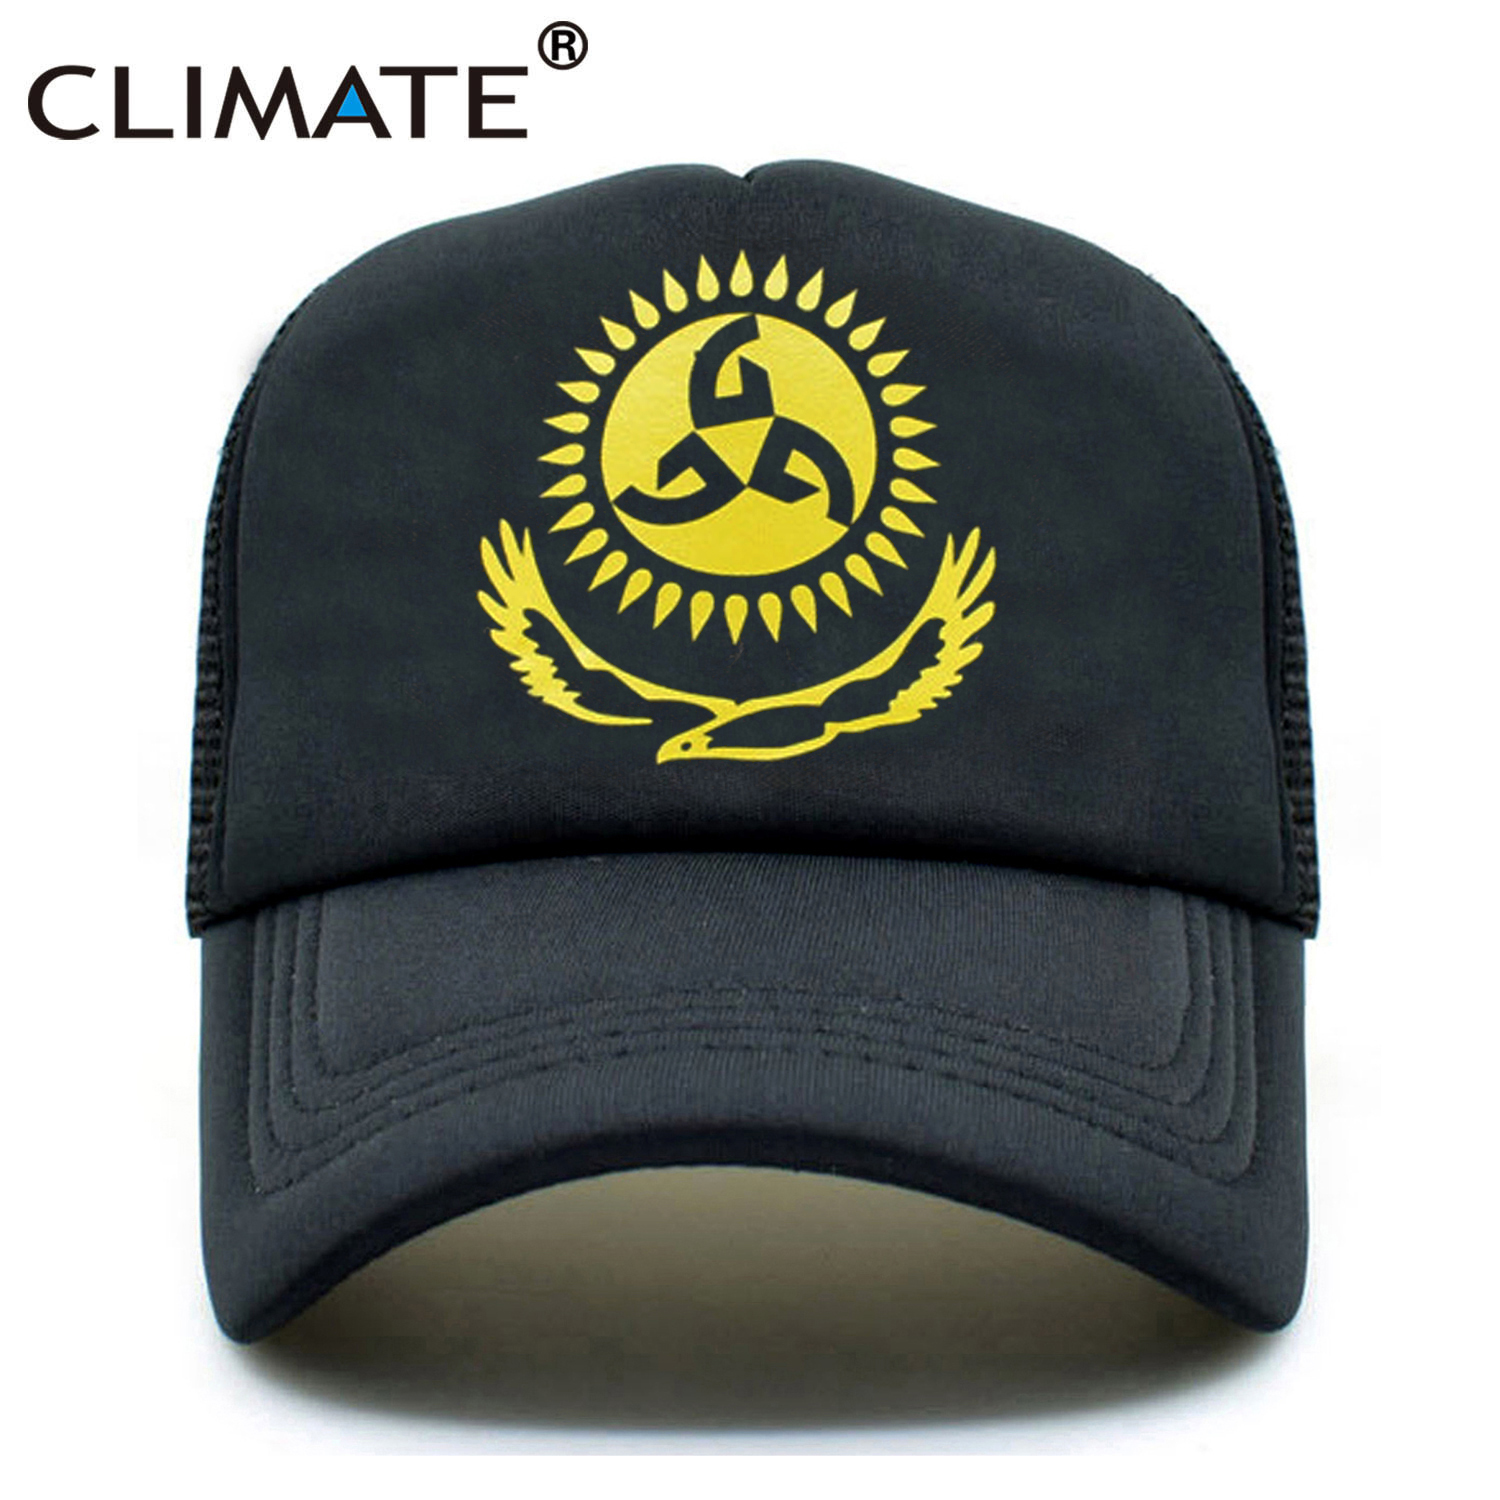 046a92dfc08 Buy hats for men nets and get free shipping on AliExpress.com